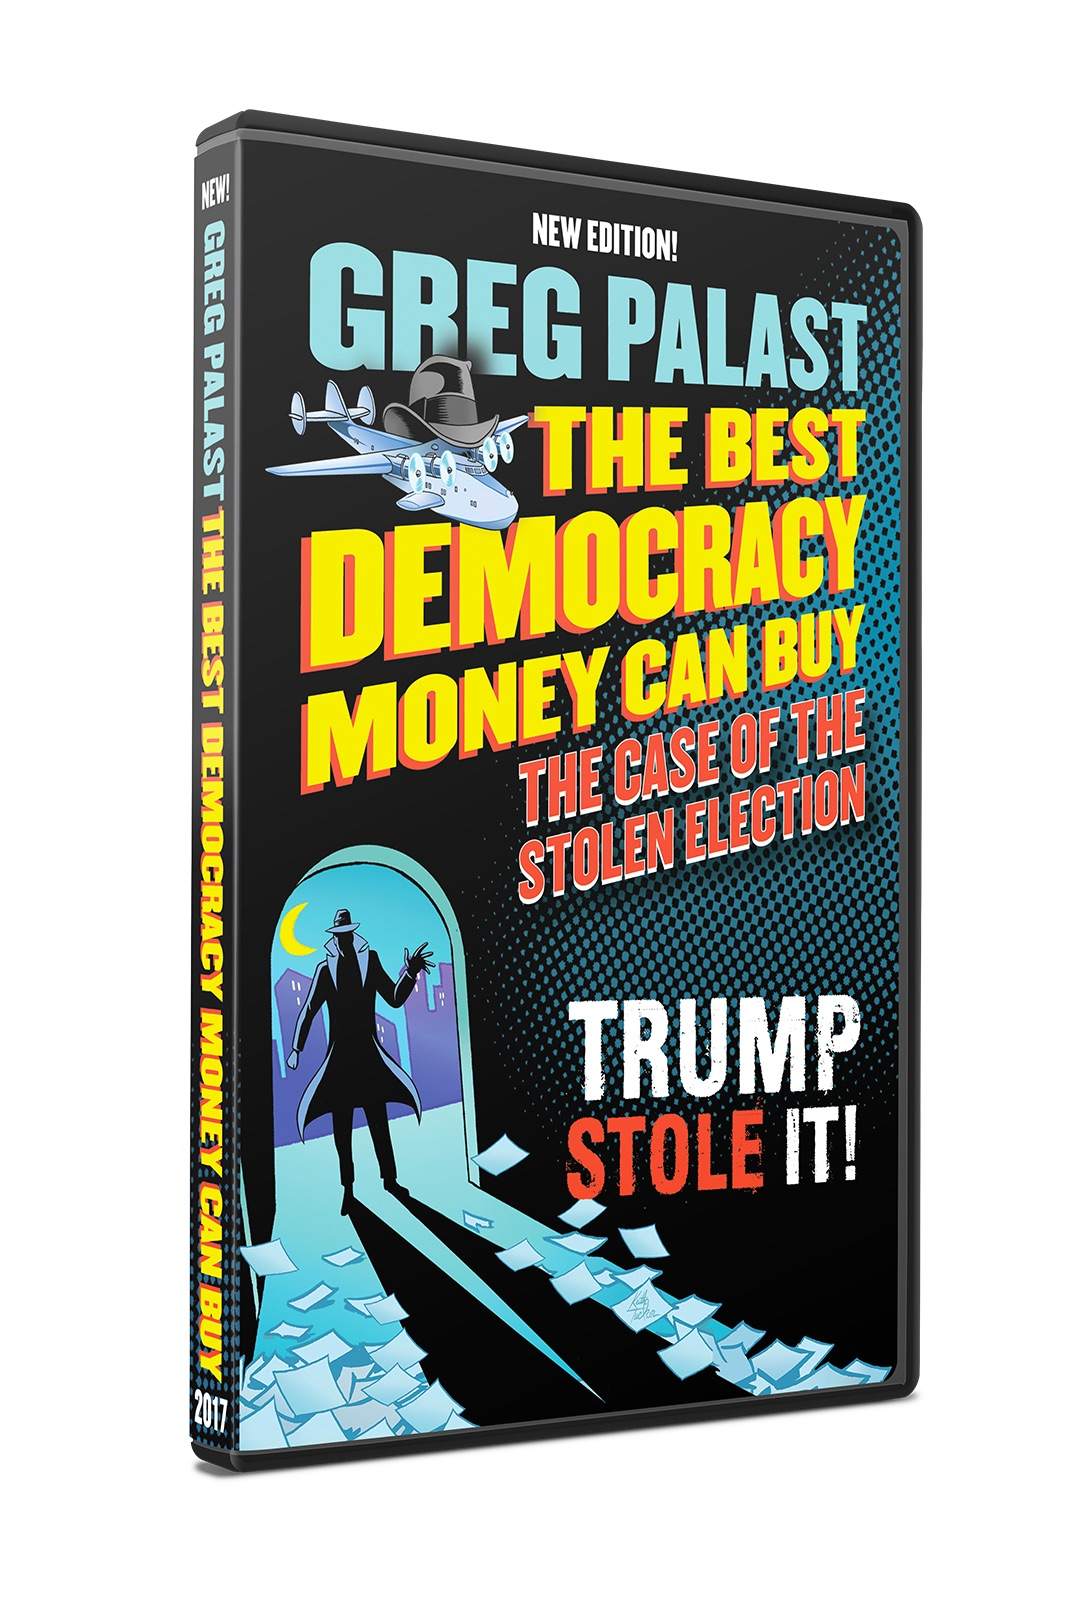 The Best Democracy Money Can Buy: The Case of the Stolen Election, Trump Stole It (Updated DVD)